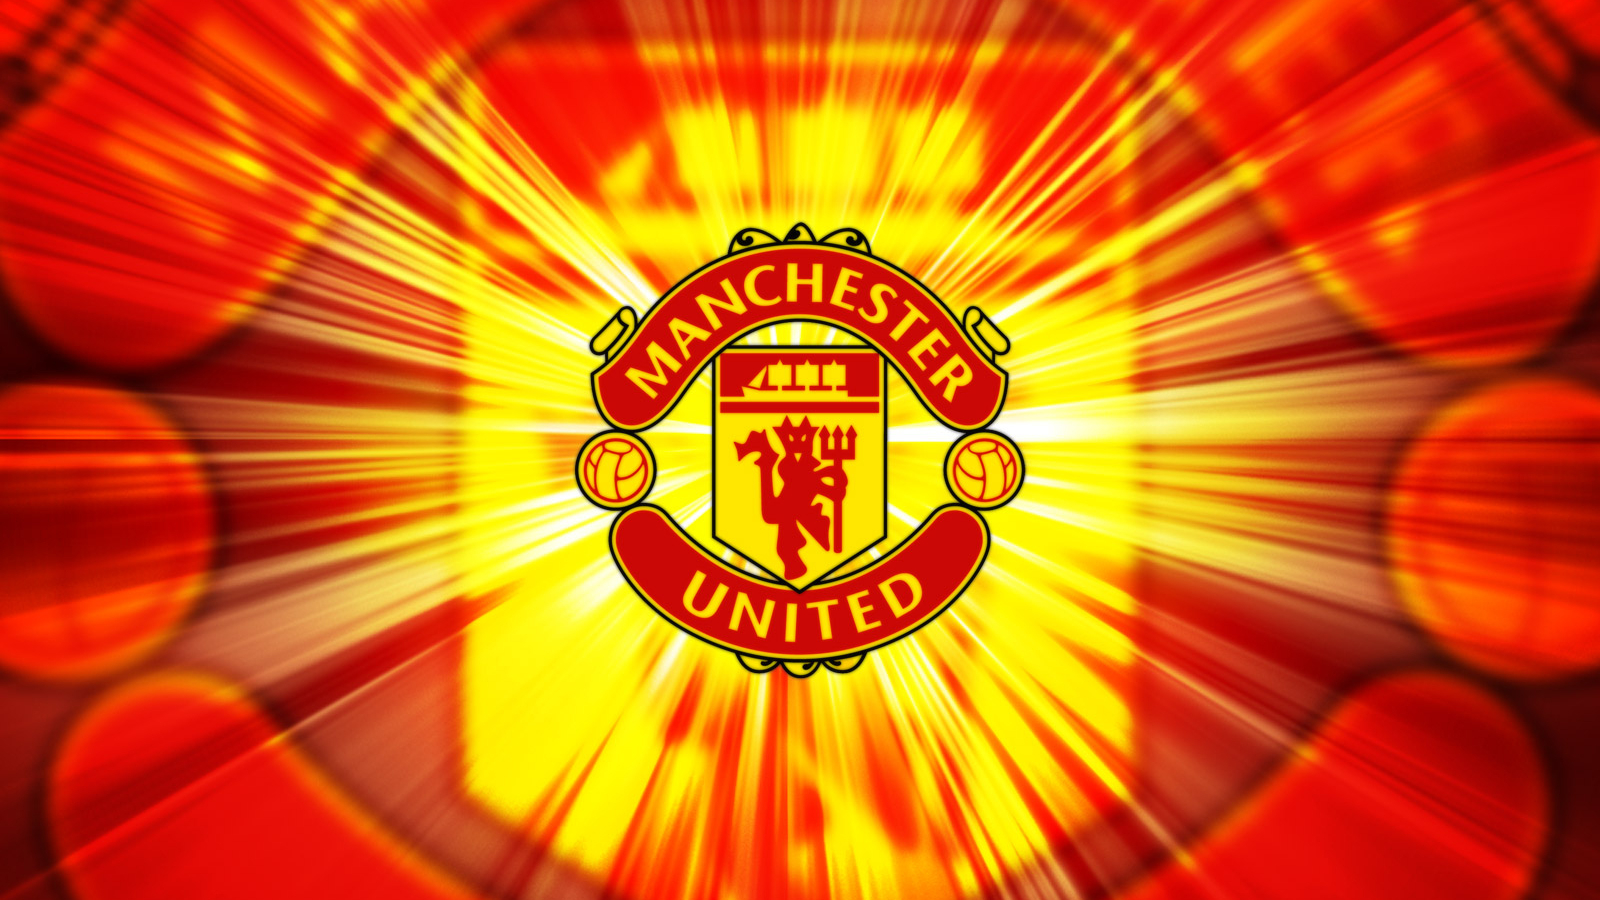 Free Download Seven Share Manchester United Wallpaper